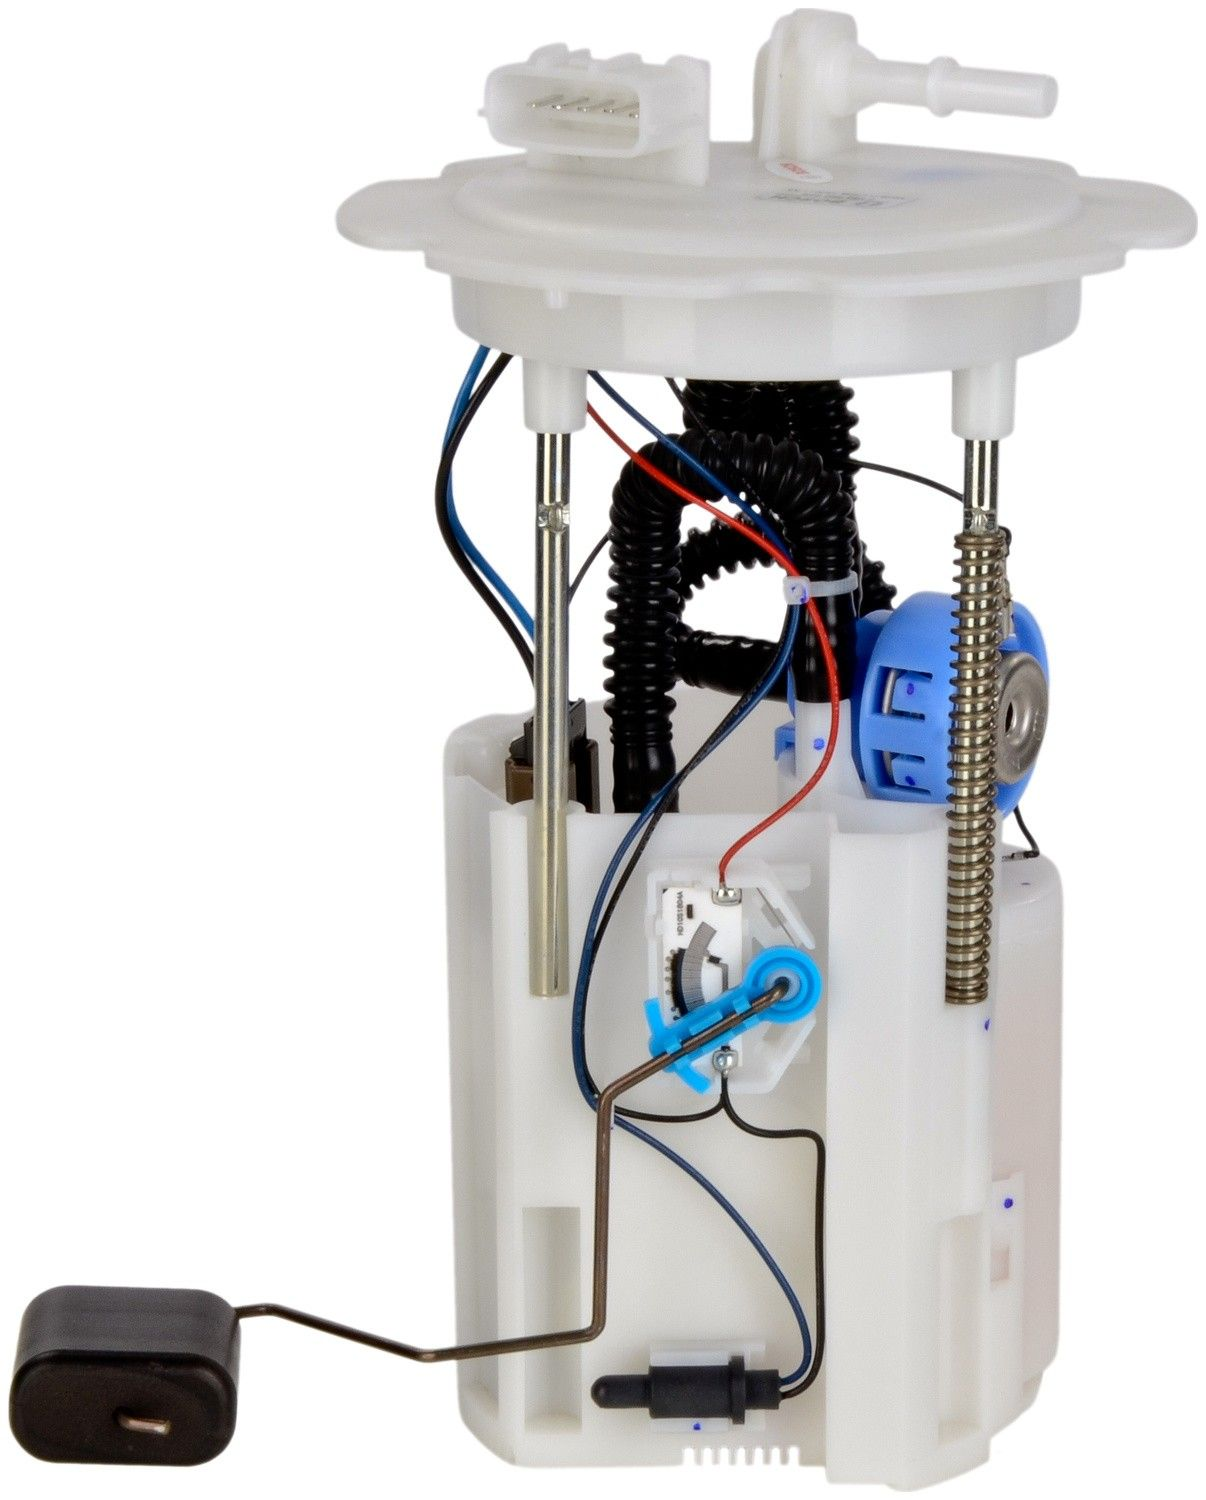 2002 Nissan Sentra Fuel Pump Module Assembly 4 Cyl 2.5L (Bosch 69889) With  temperature sensor .